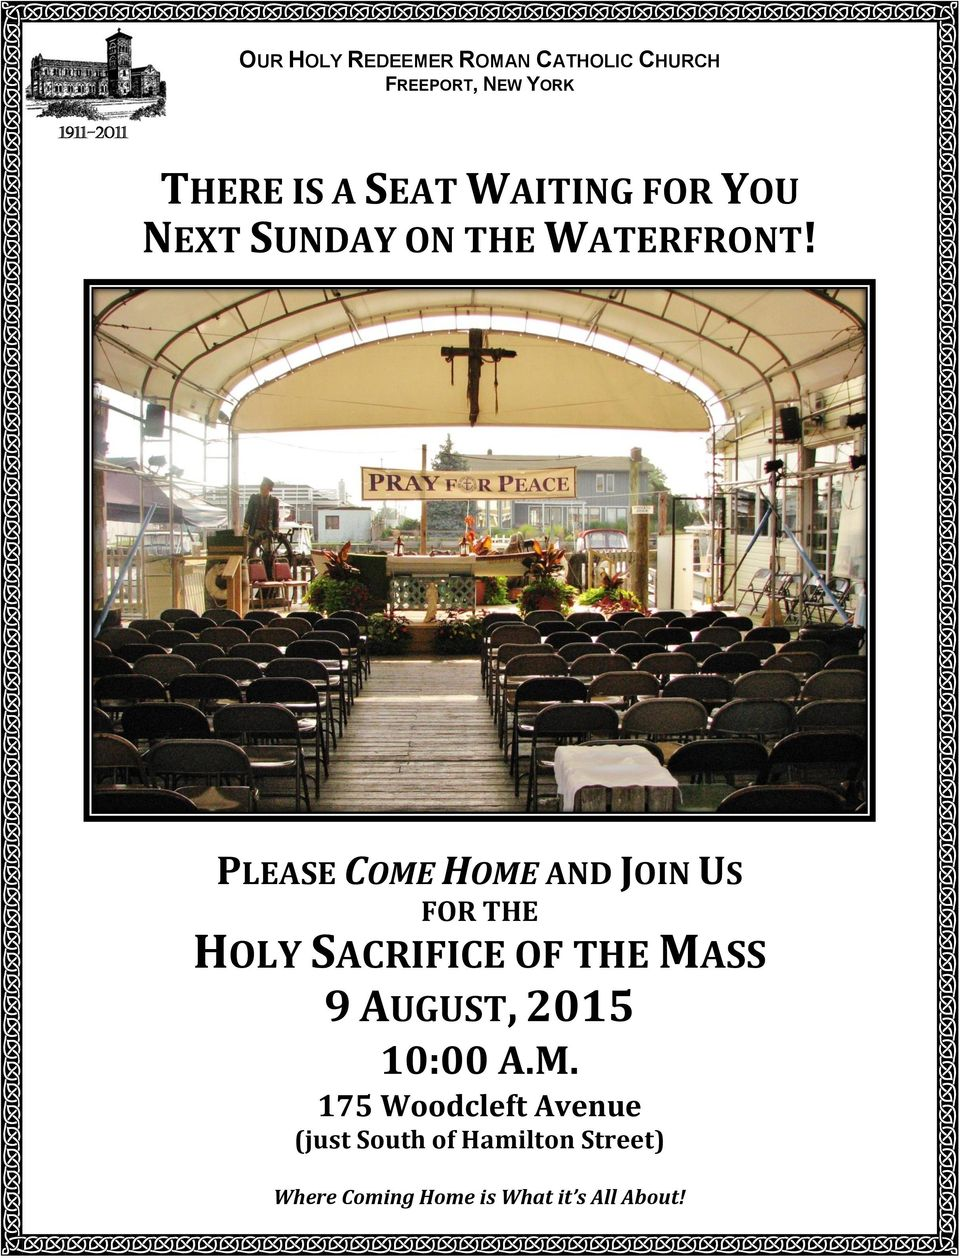 PLEASE COME HOME AND JOIN US FOR THE HOLY SACRIFICE OF THE MASS 9 AUGUST, 2015